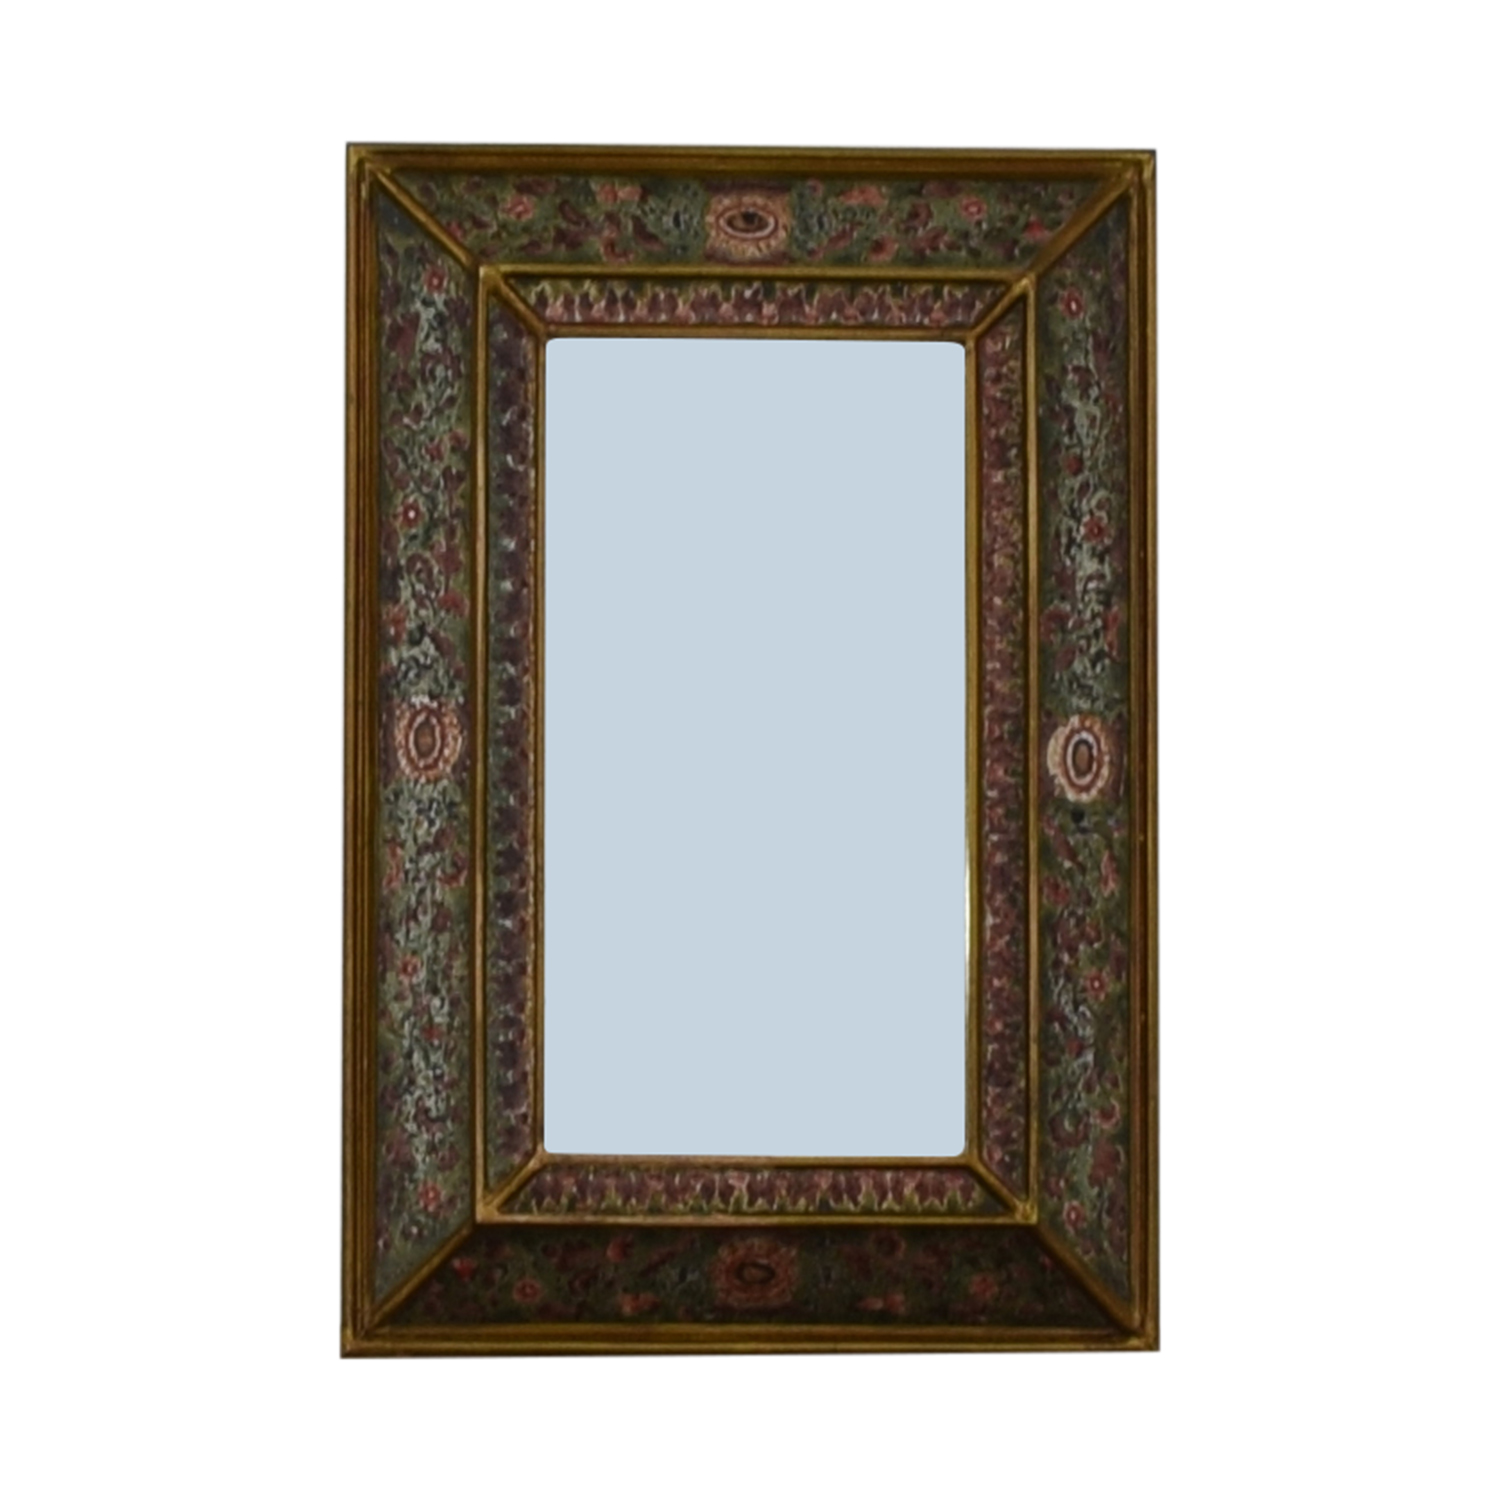 Painted Frame Mirror dimensions